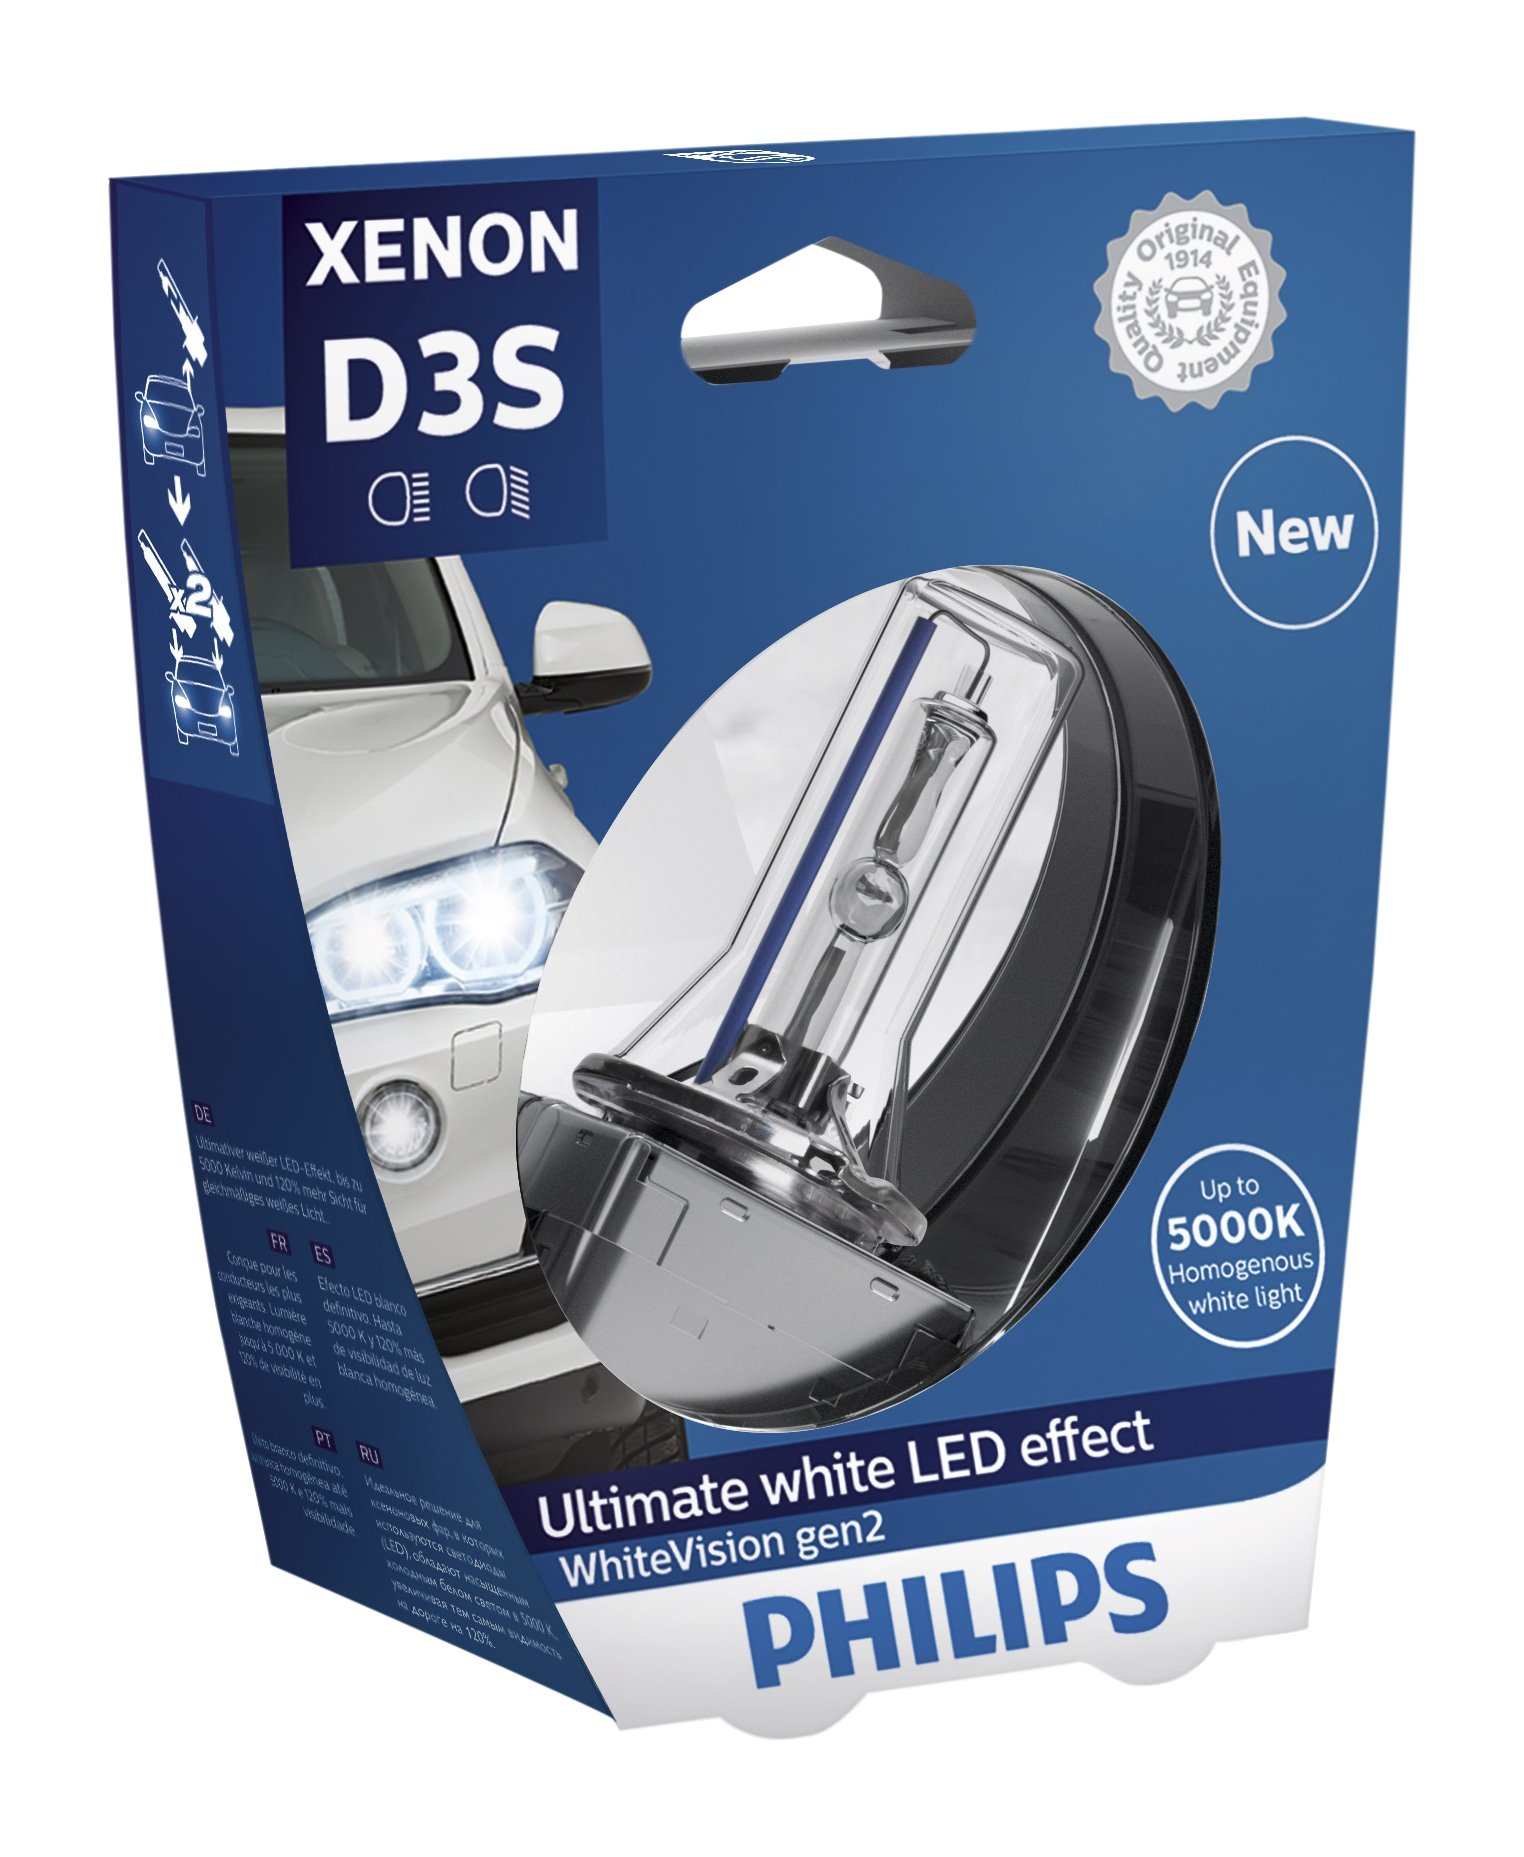 Philips 42403WHV2S1 Xenon-Scheinwerferlampe WhiteVision D3S Gen2, Einzelblister von Philips automotive lighting